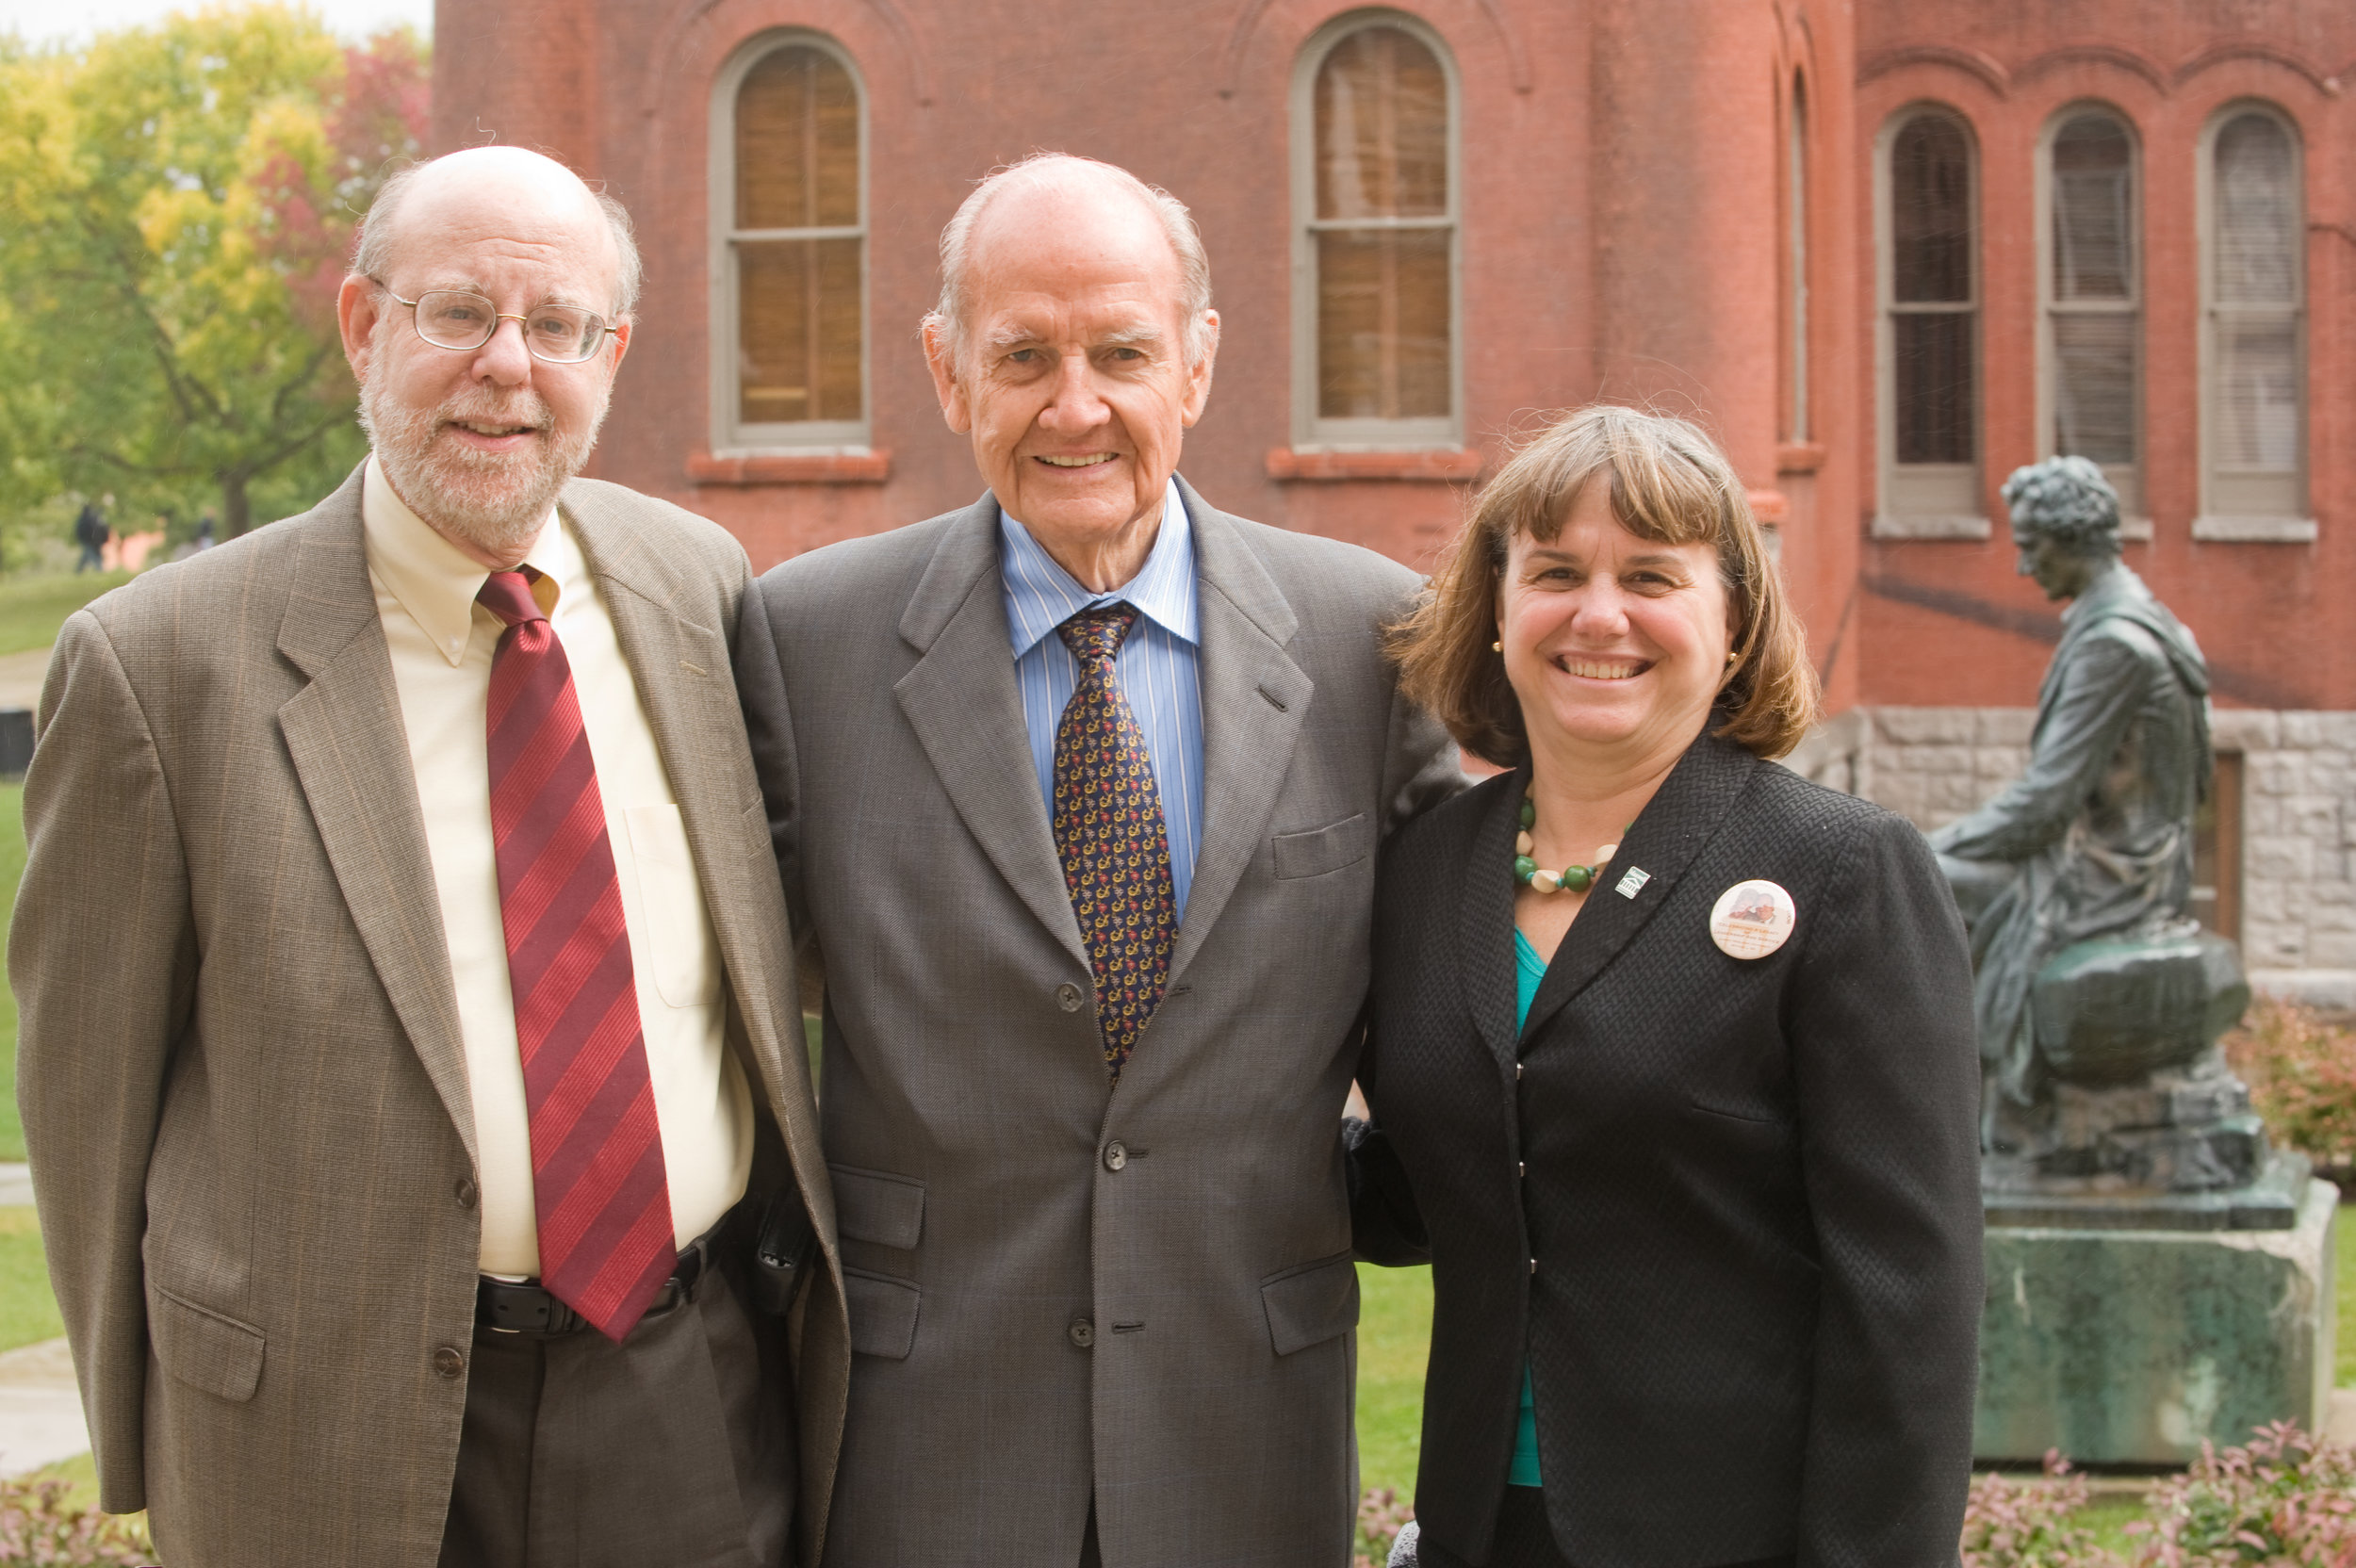 Catherine Bertini and PAIA Department Chair Stu Bretschneider welcoming Senator George McGovern to Maxwell after he had just written a book about Abraham Lincoln (2009)